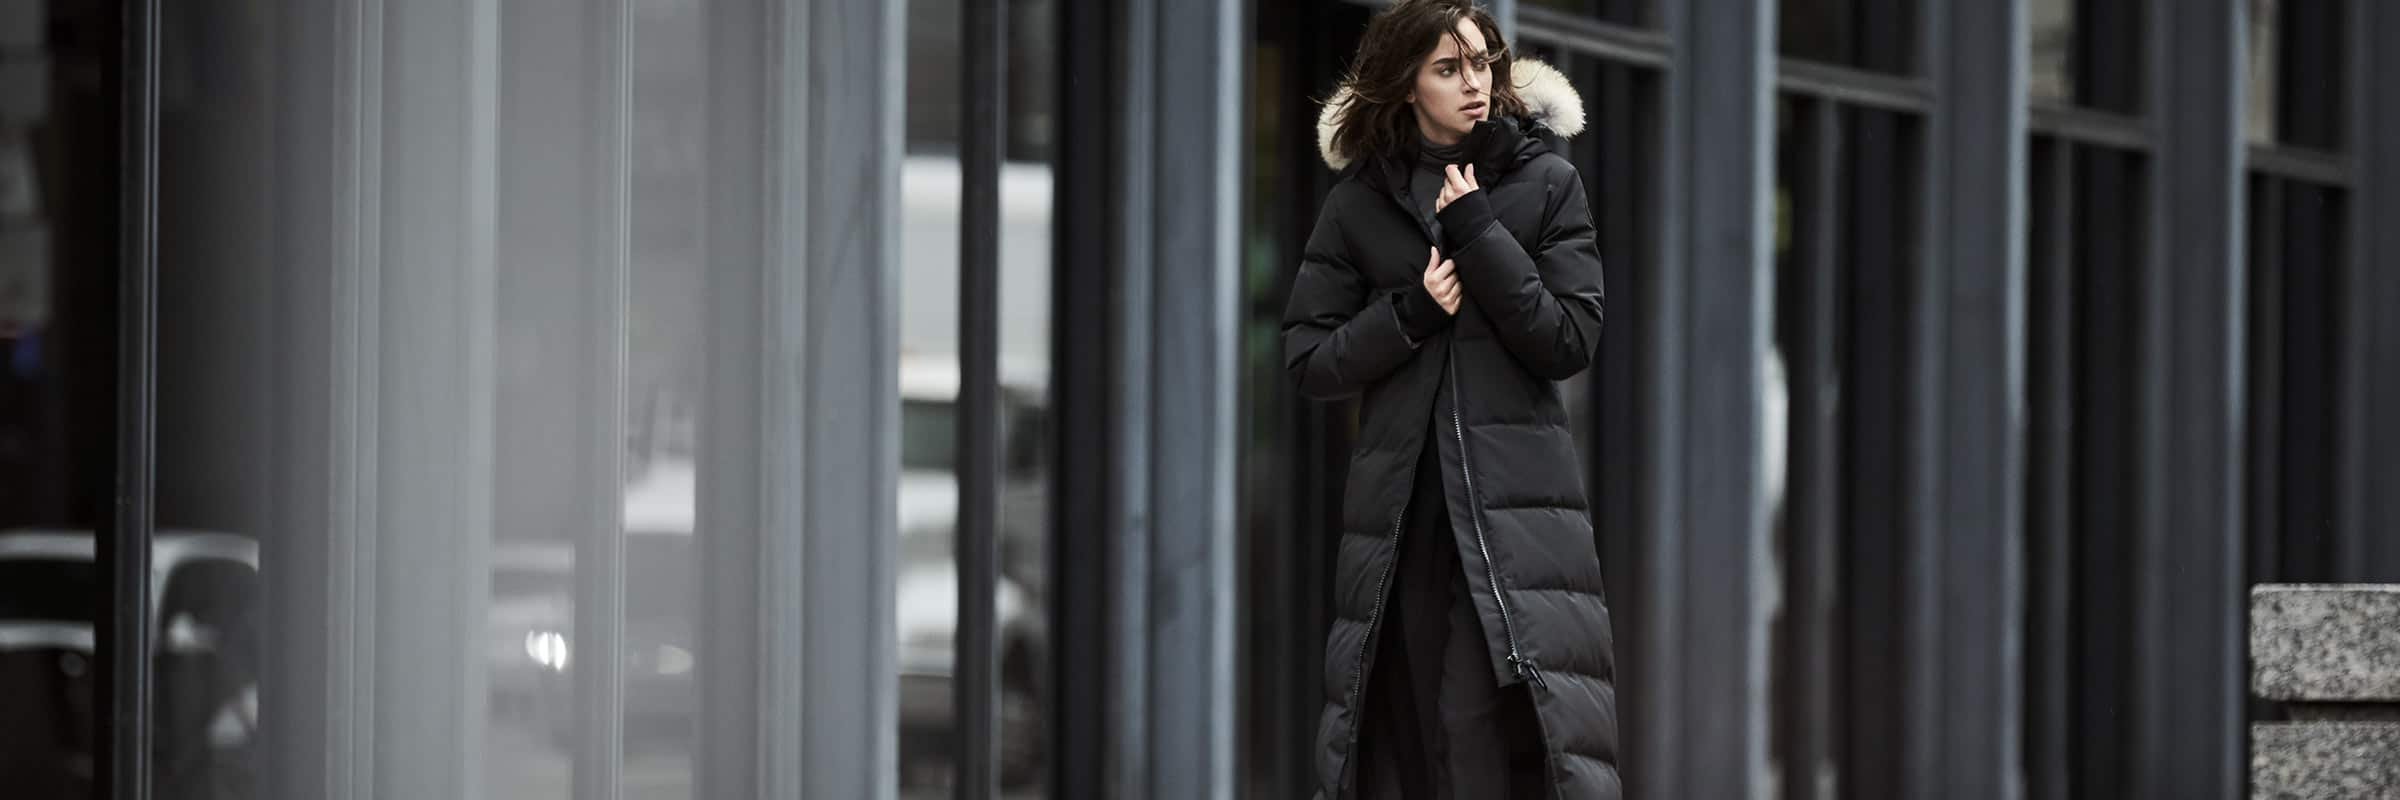 Canada Goose. Canada Goose Fusion Fit  Winter Coats Designed for Petite  Body Frames 306ab3f496